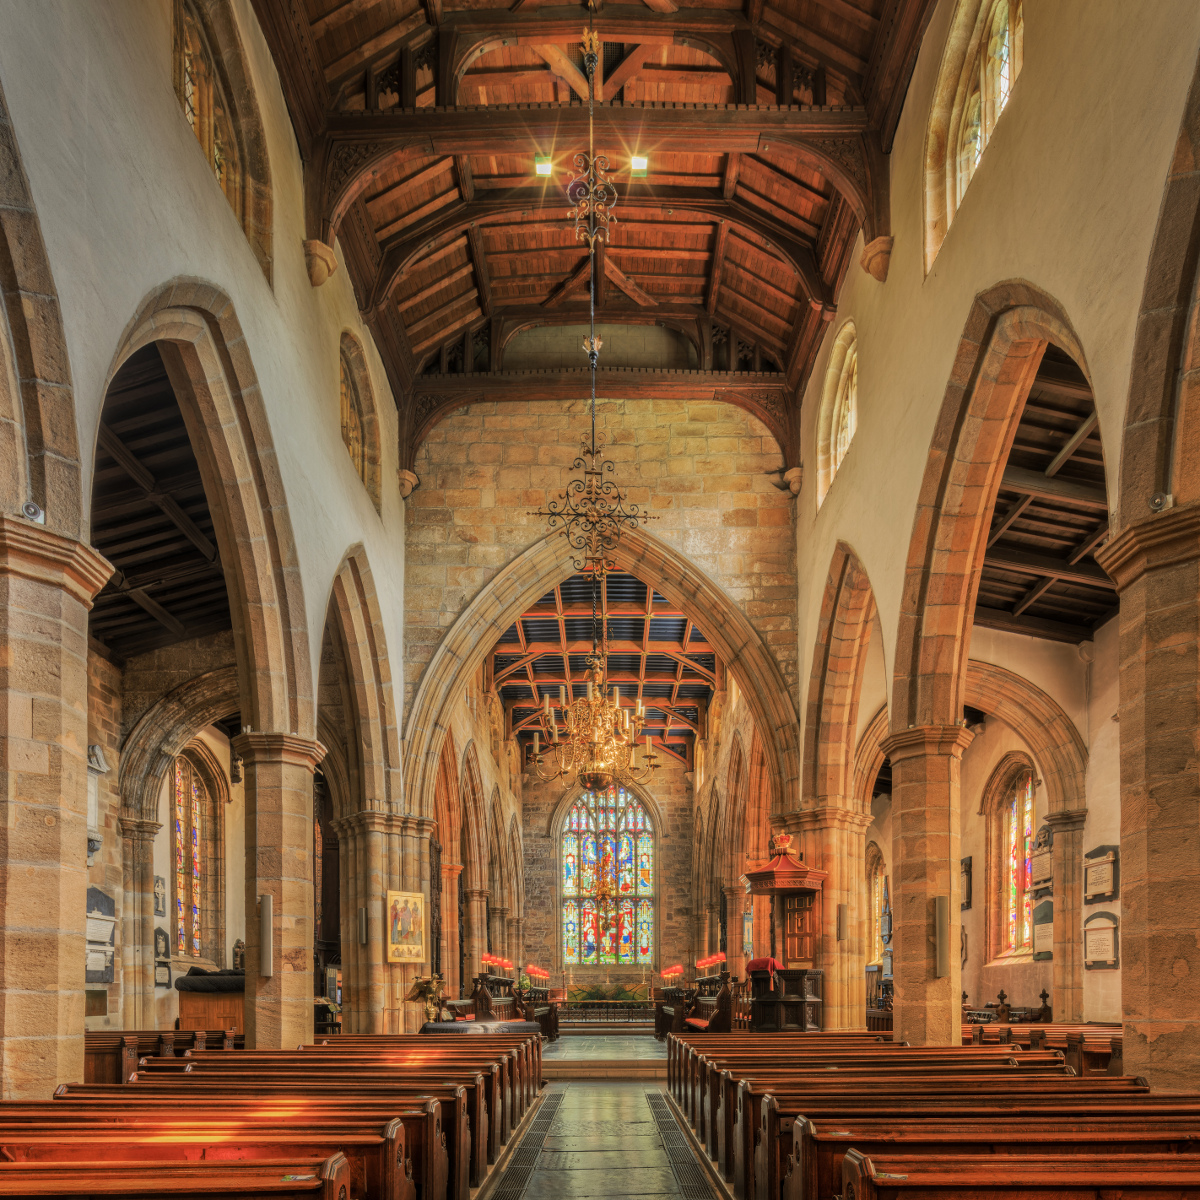 Inside Lancaster Priory the carved choirstalls are of oak and, dating from 1340, are the third oldest in England.